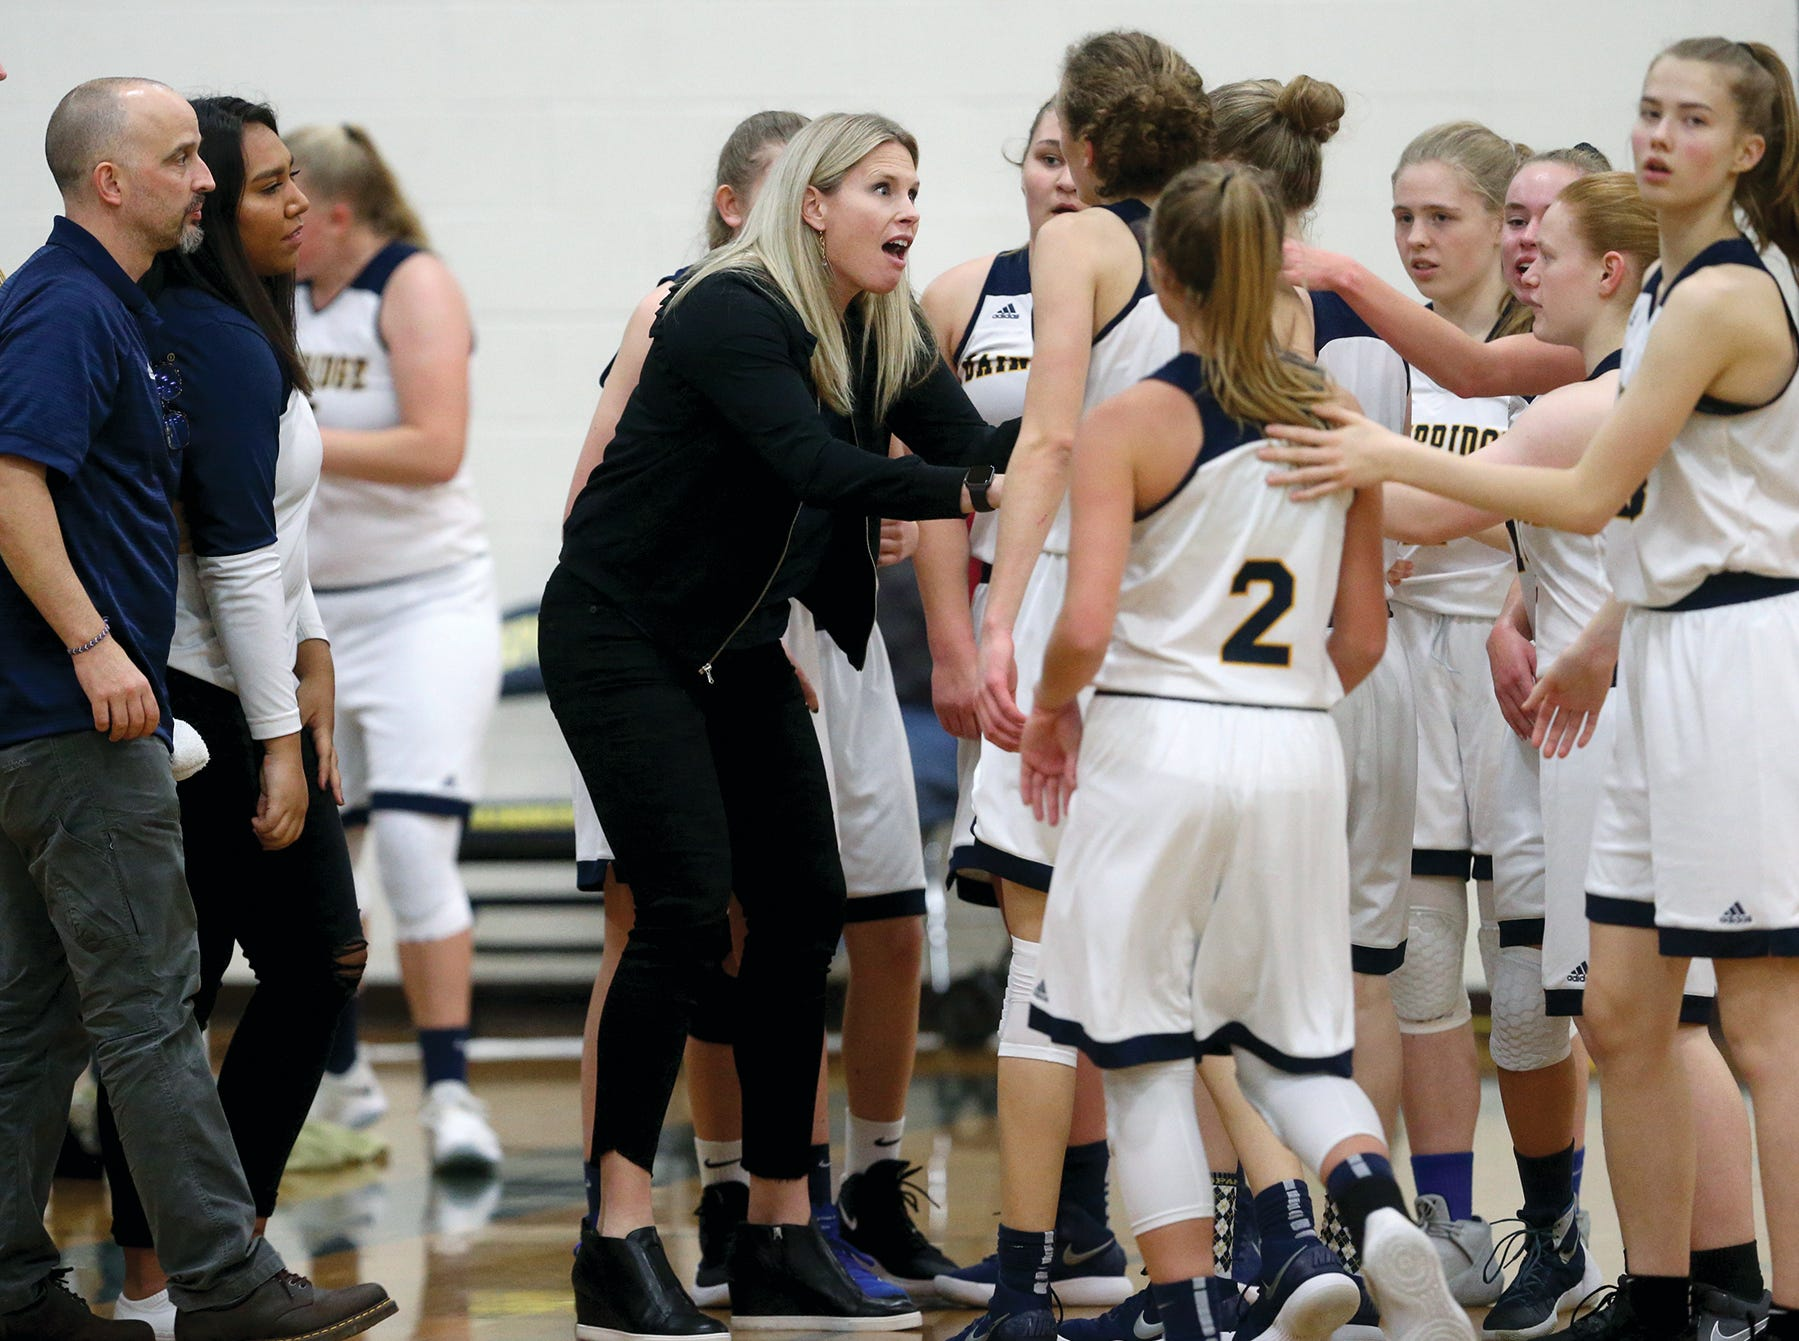 The Bainbridge girls basketball team played Port Angeles at Bainbridge, on Wednesday, Nov. 28, 2018. Bainbridge head coach Karen Byers pumps up team during a time out against Port6 Angeles.